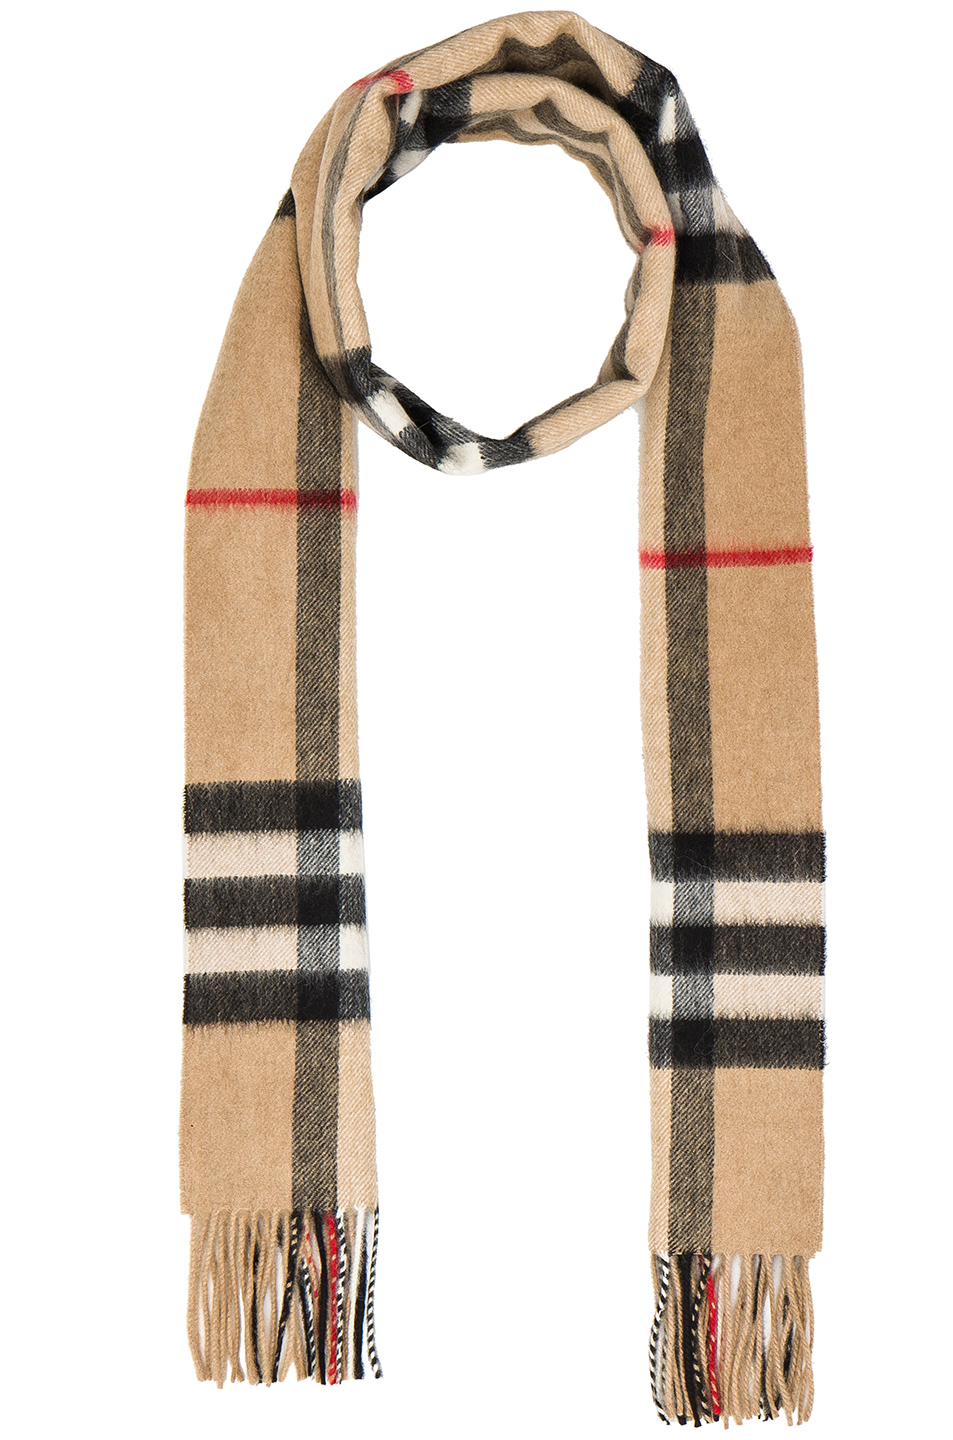 Burberry Giant Check Cashmere Scarf in Neutrals,Checkered & Plaid